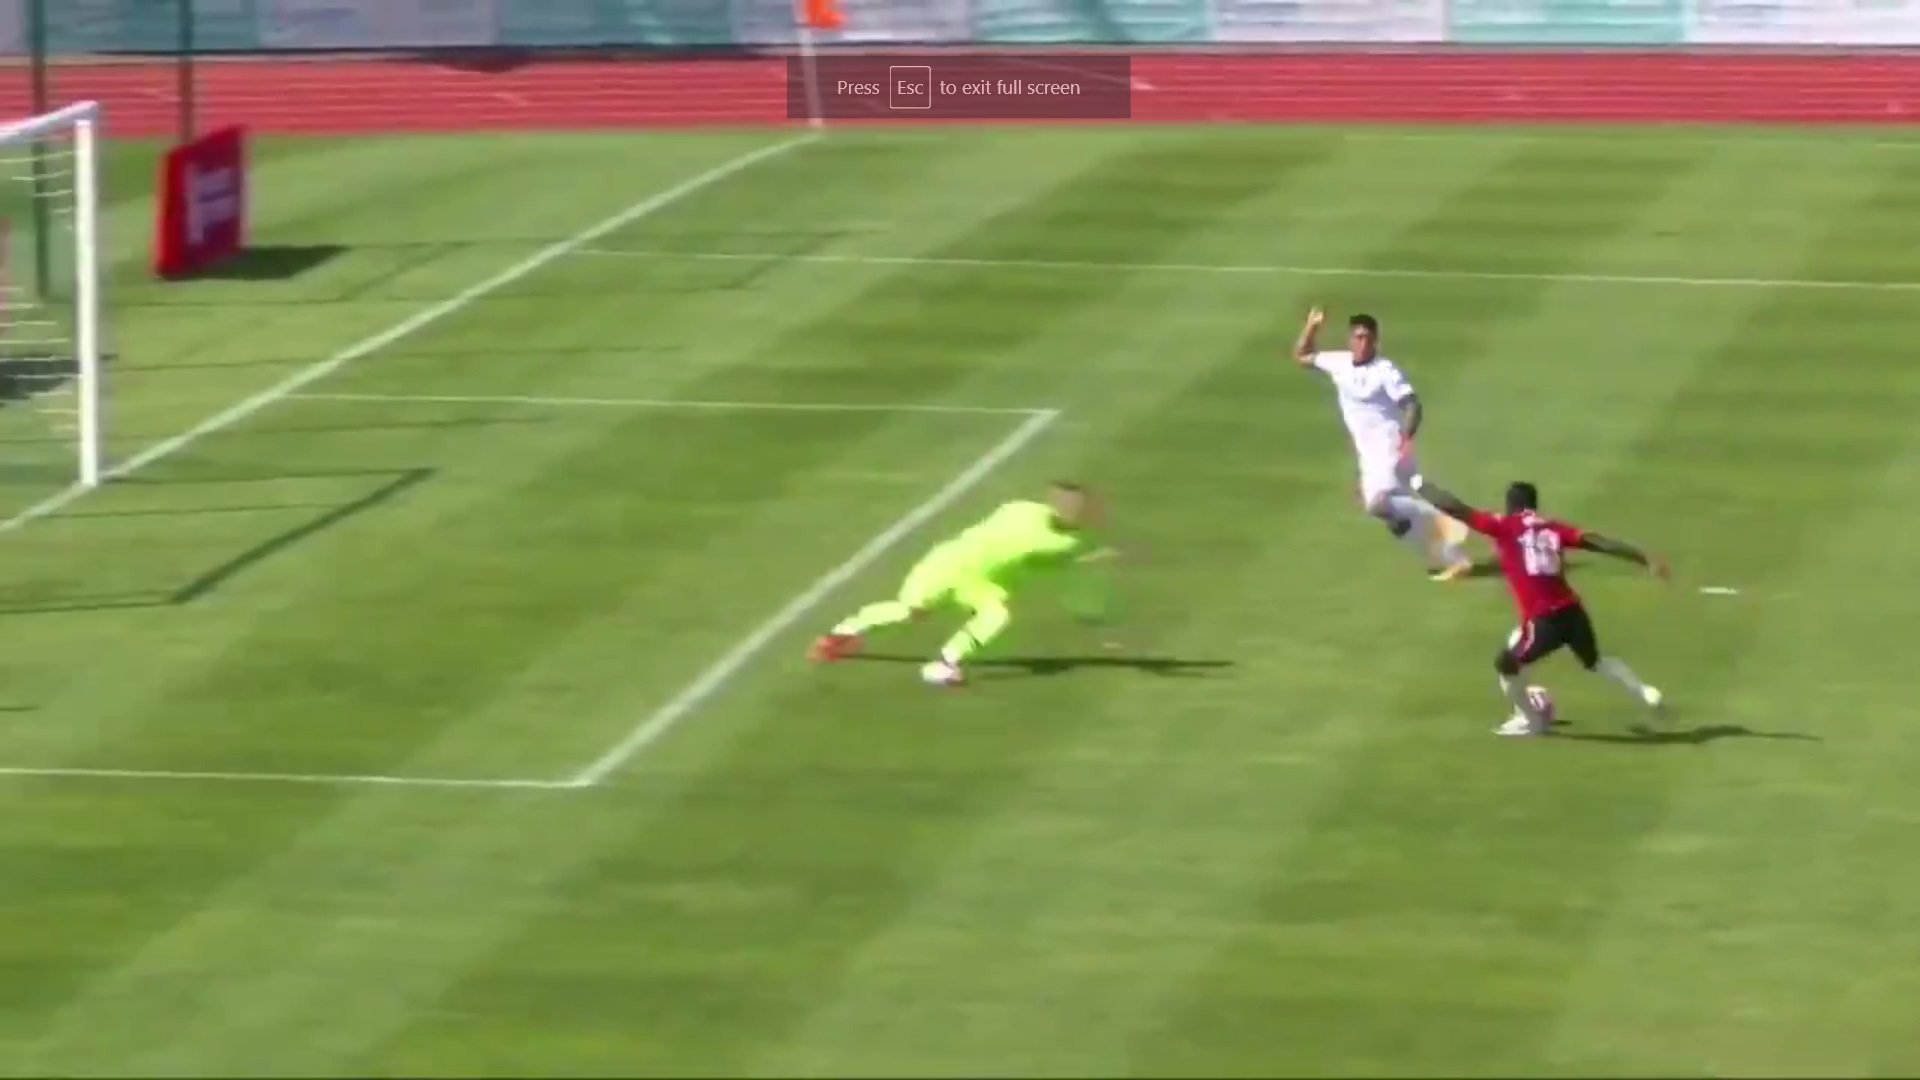 (Video) Sadio Mane makes it 2-0 to Liverpool with poacher's goal as Bologna collapse defensively